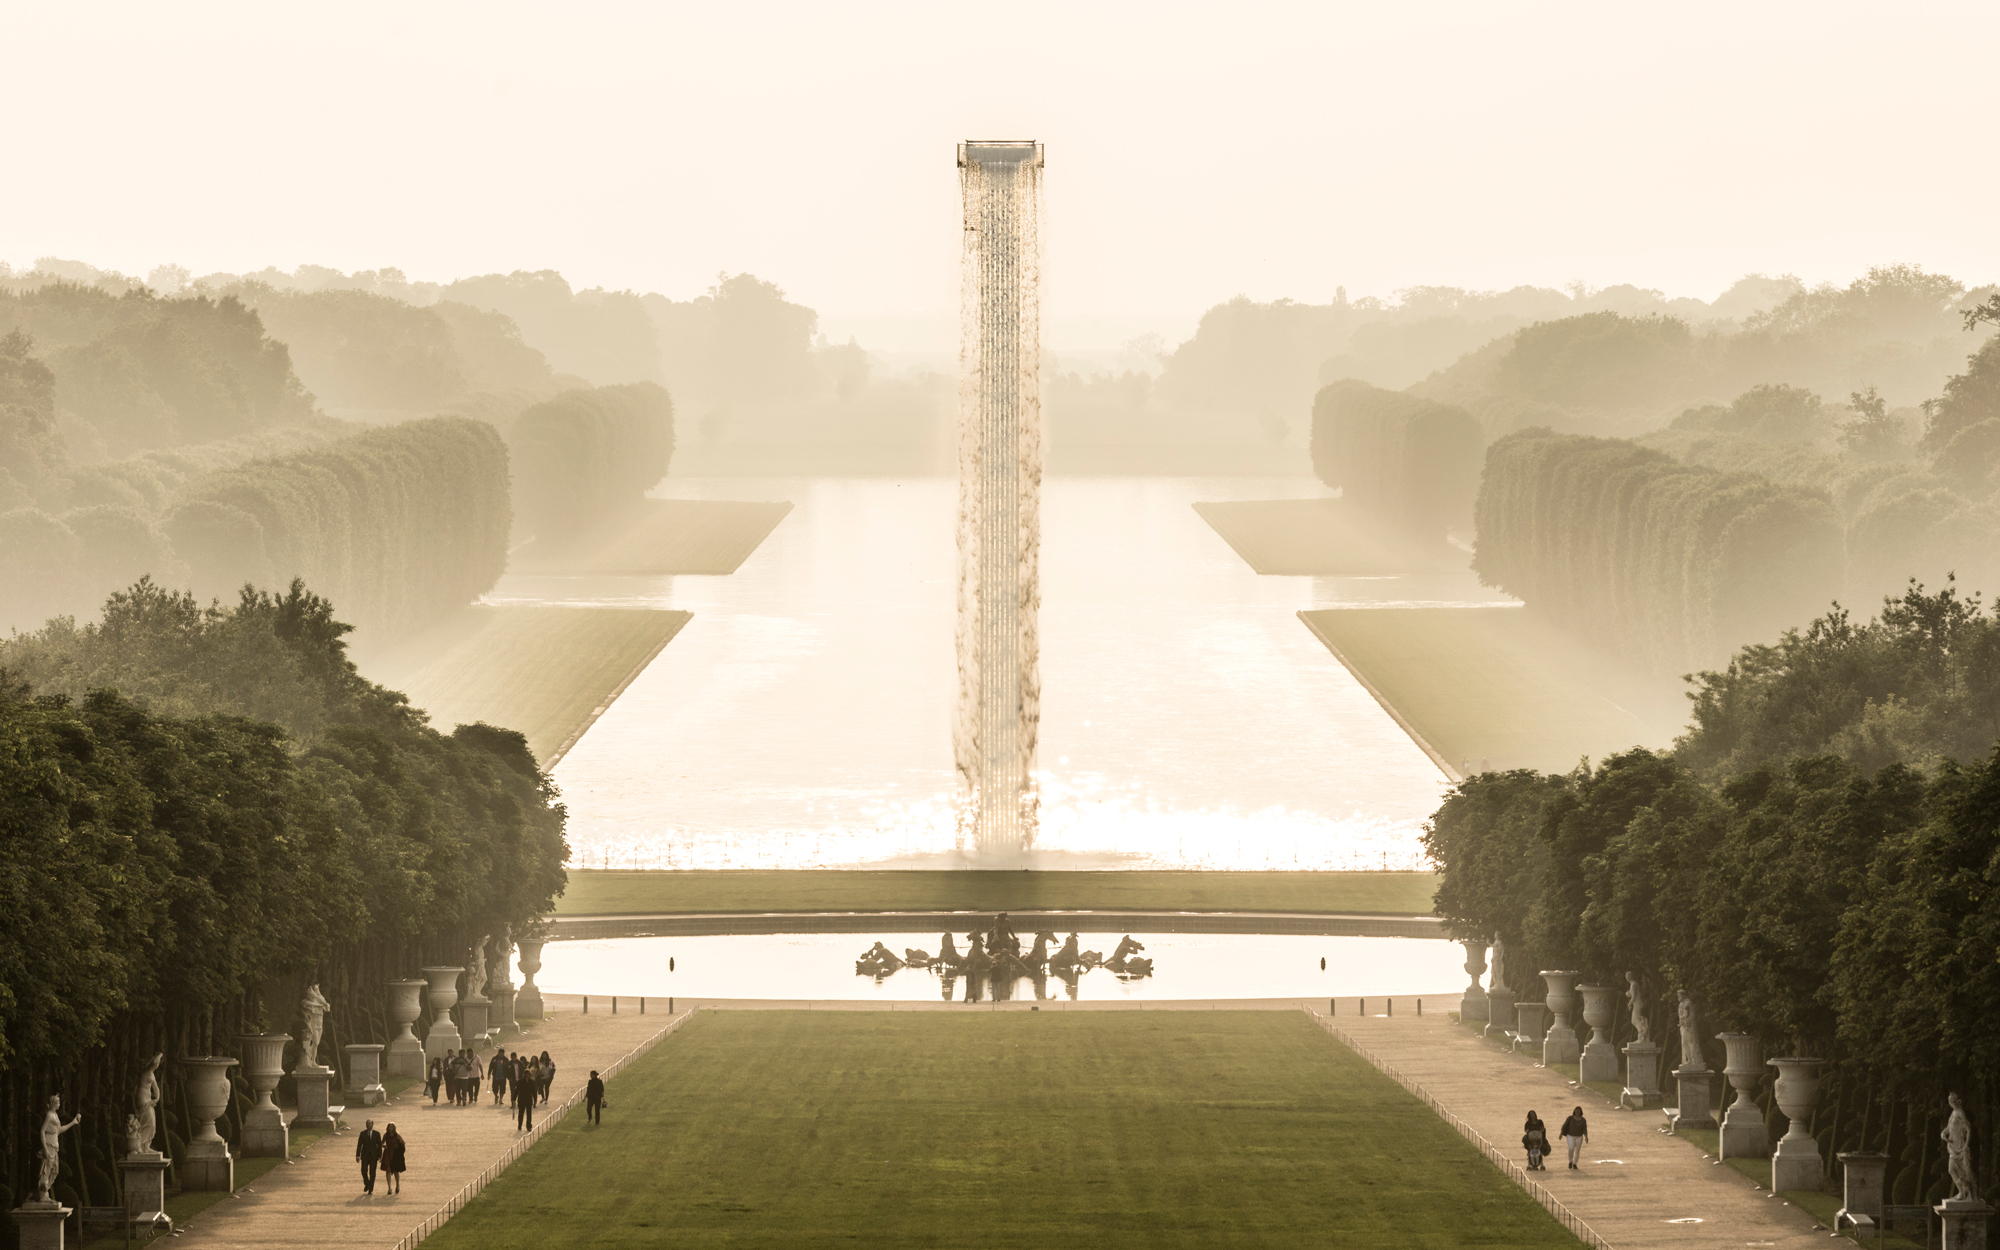 Floating Waterfall Installed at the Palace of Versailles